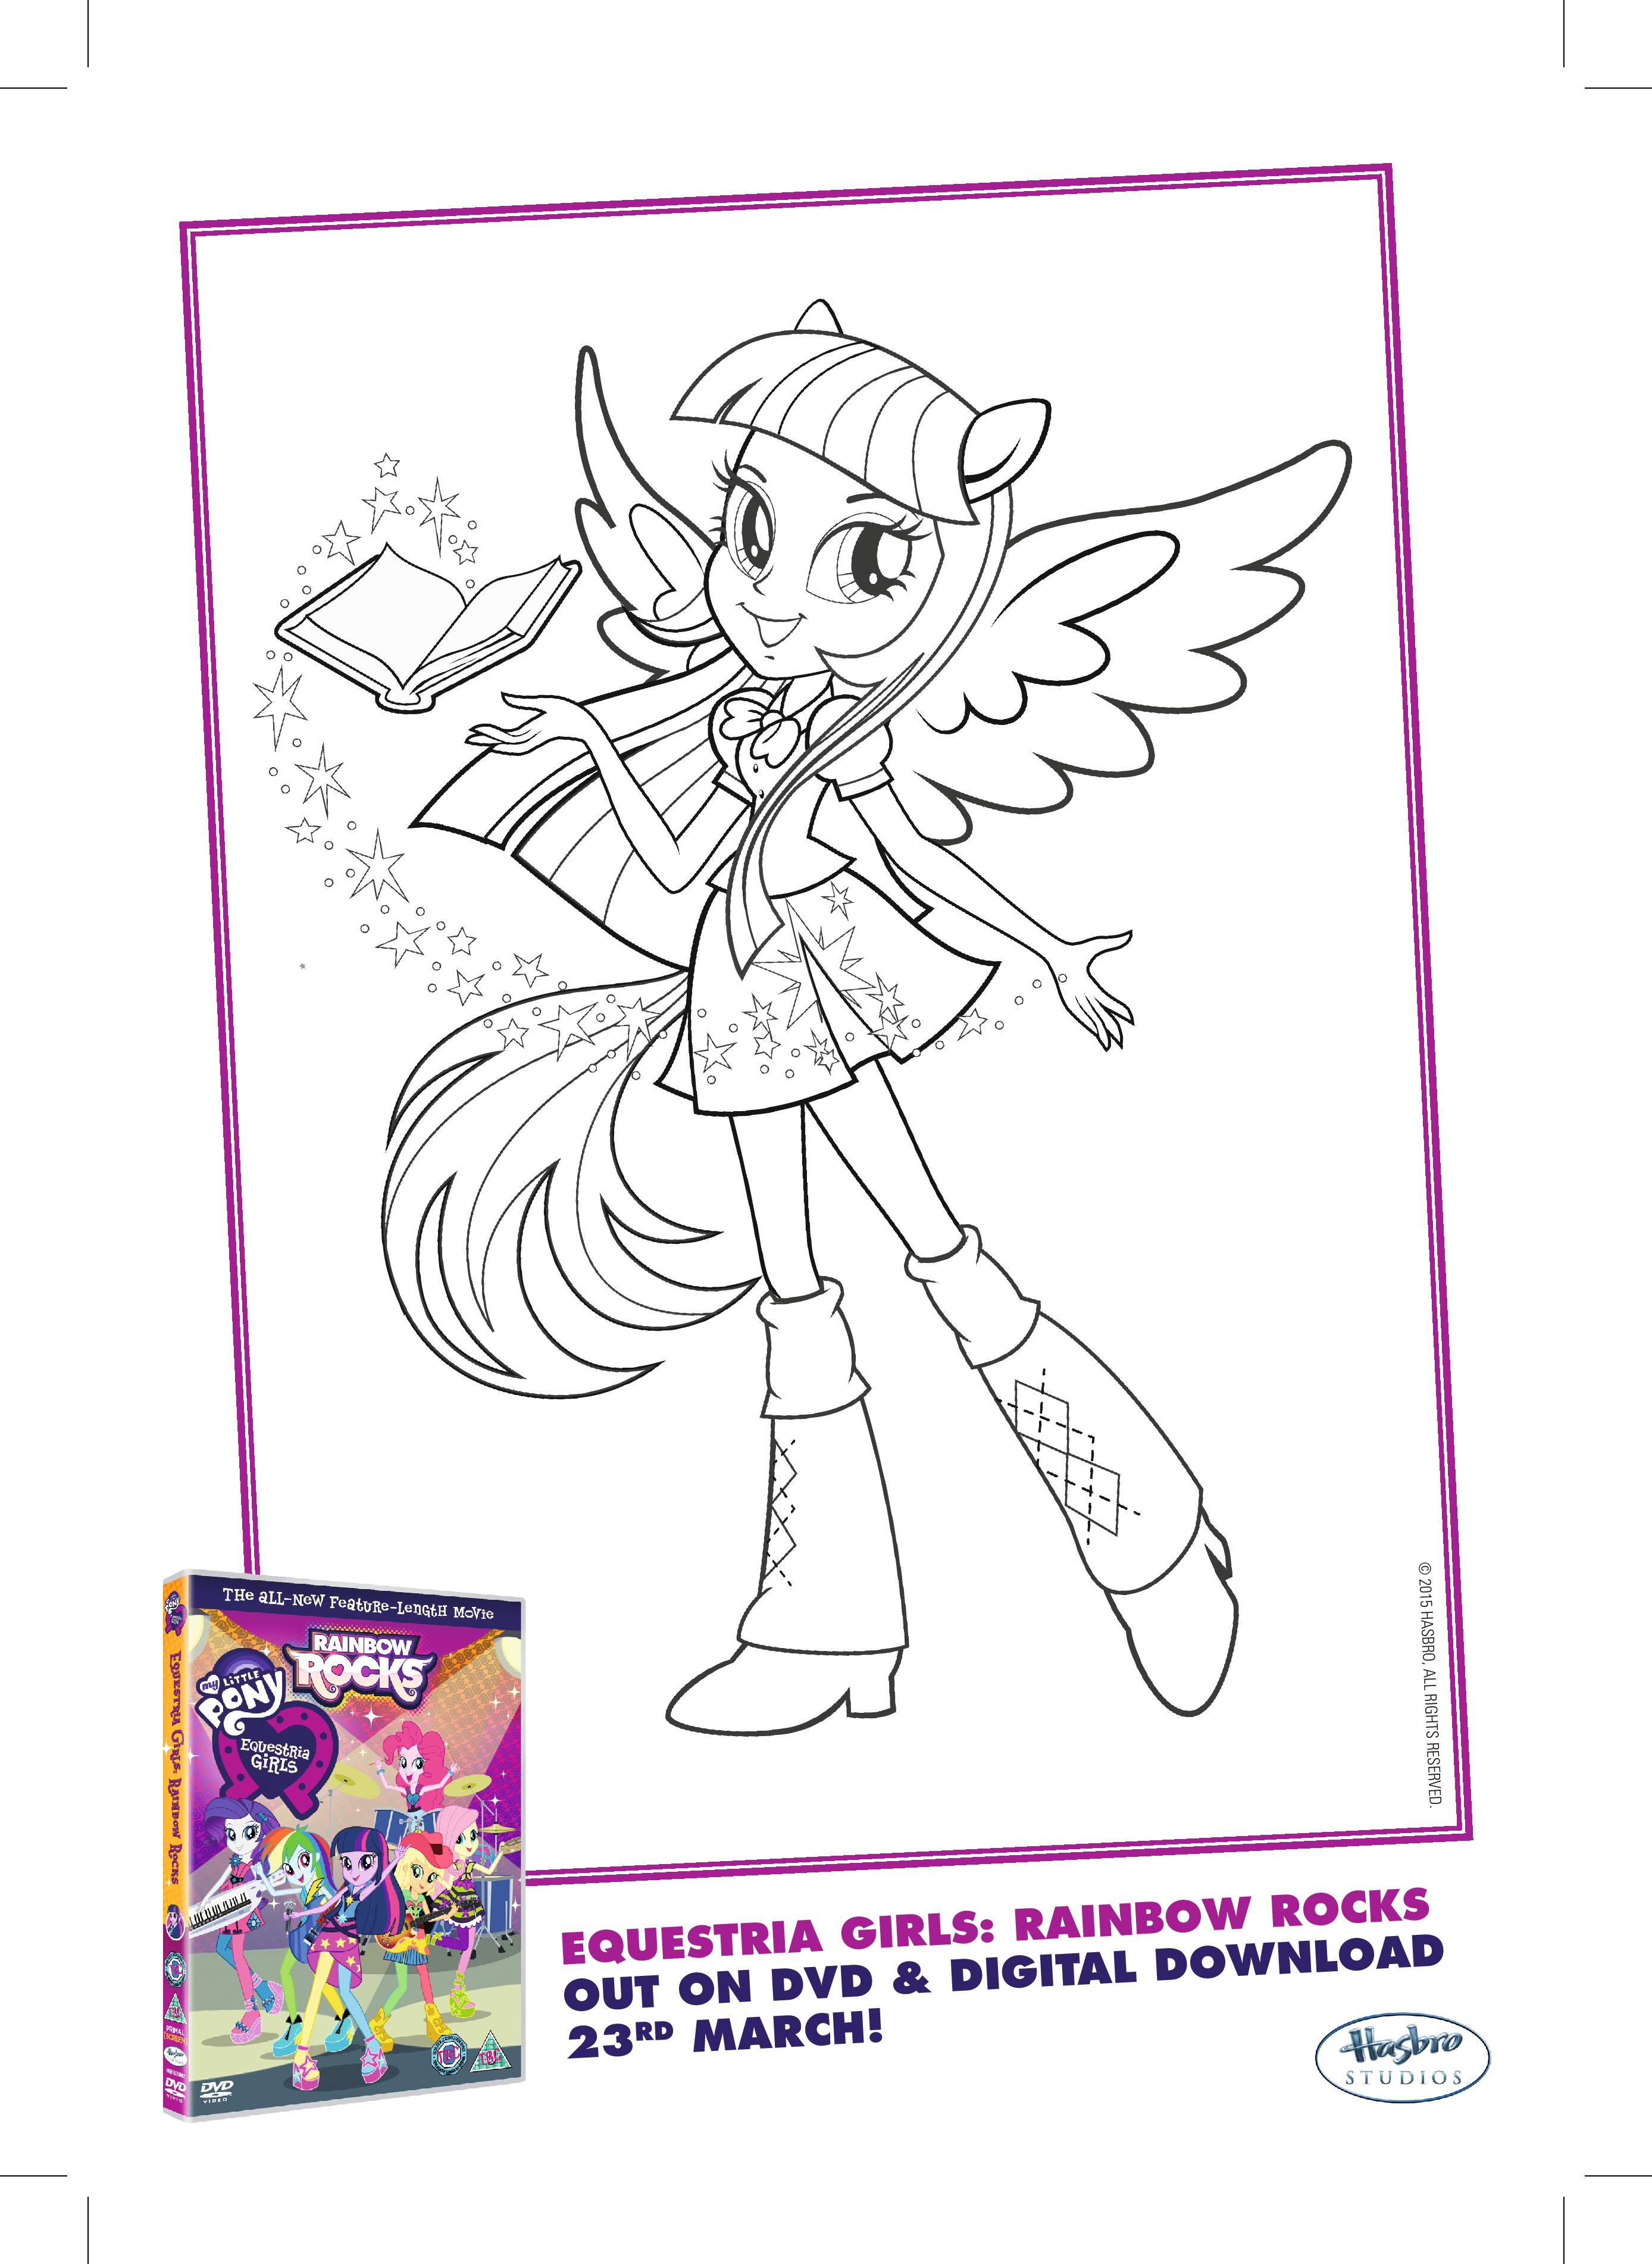 EquestriaGirls_colouring_3_1.2_PRINT_READY-page-001